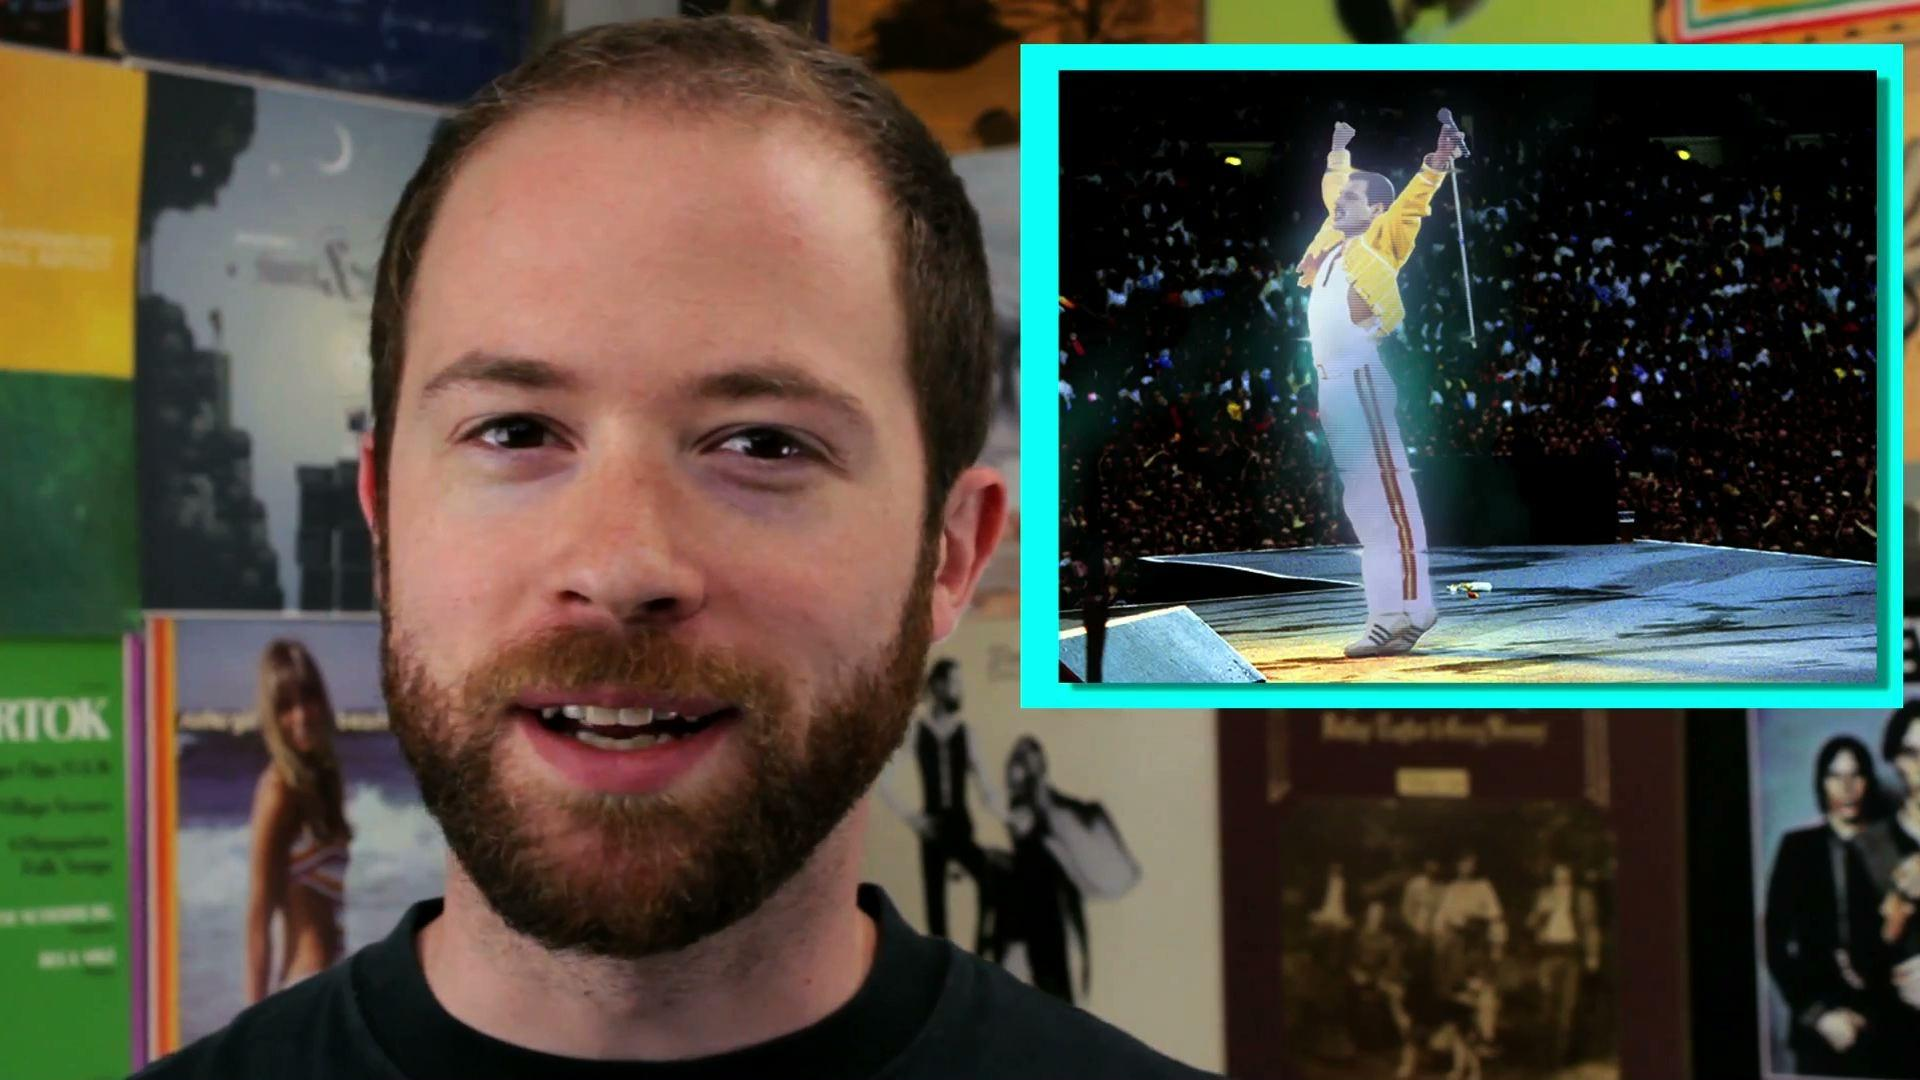 Are Holograms Nostalgia or a New Form of Art? image